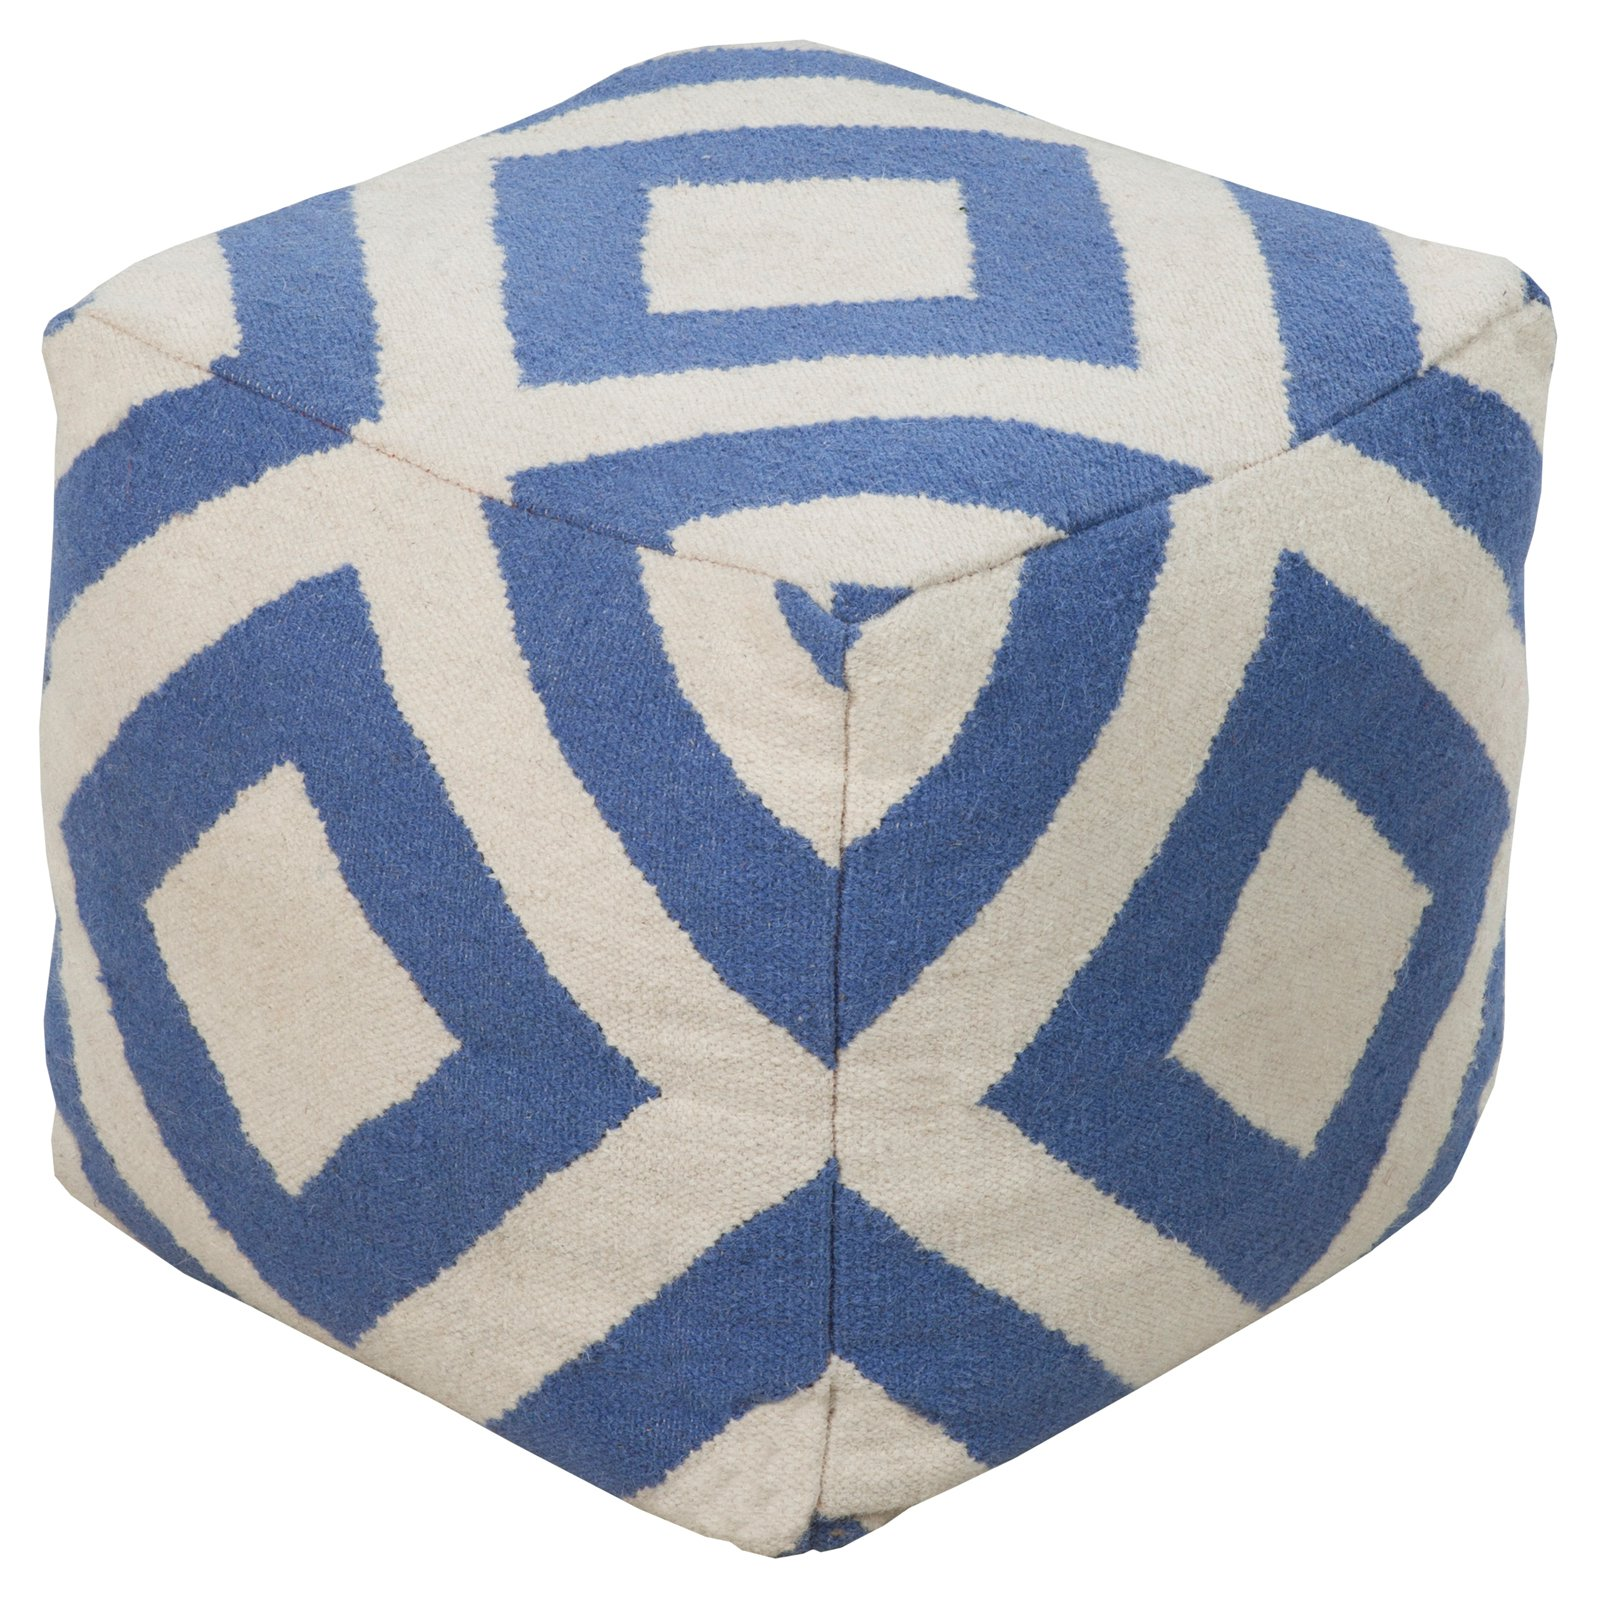 Surya 18 in. Diamond Cube Wool Pouf by Surya